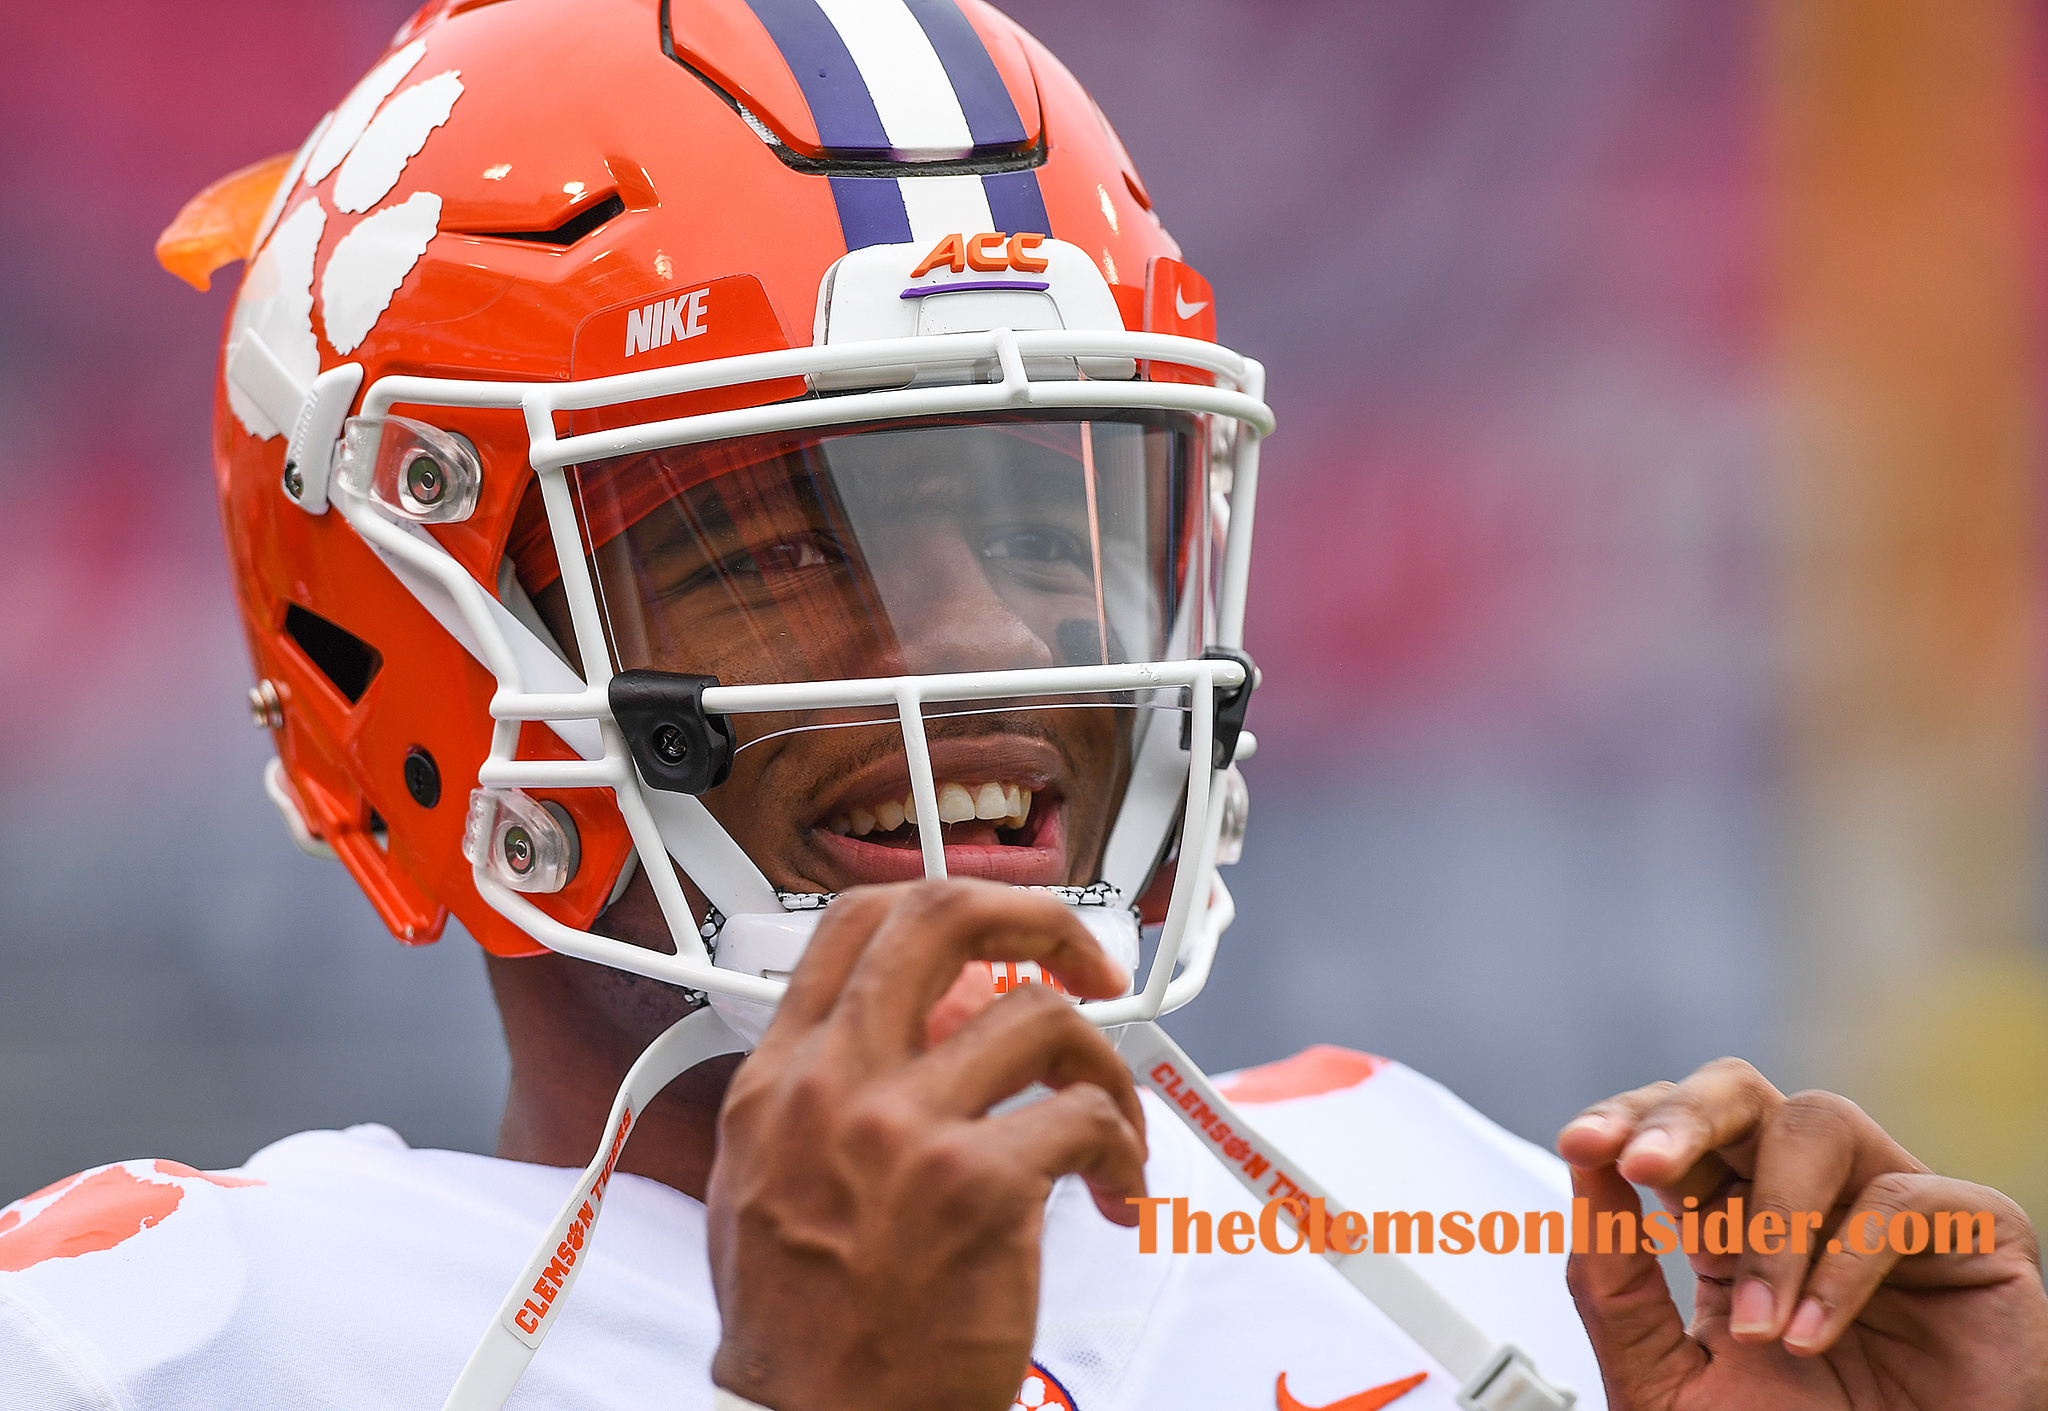 Clemson quarterback Kelly Bryant (2) during pre-game Saturday, November 4, 2017 at N.C. State's Carter Finley Stadium in Raleigh, N.C.